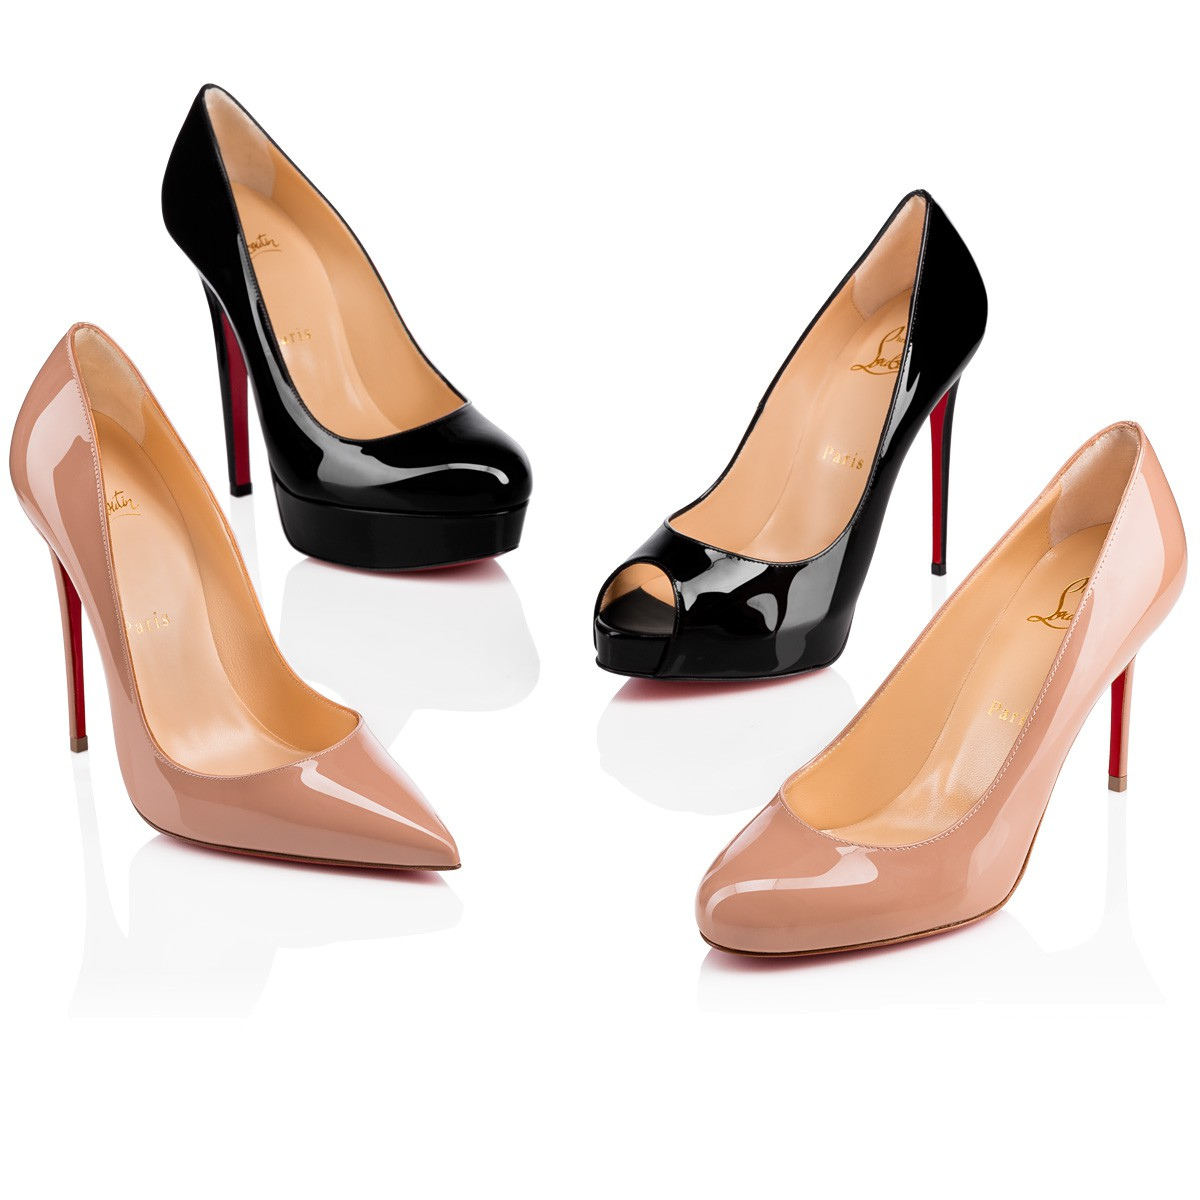 Christian Louboutin Nude So Kate 120 Mm Patent Leather